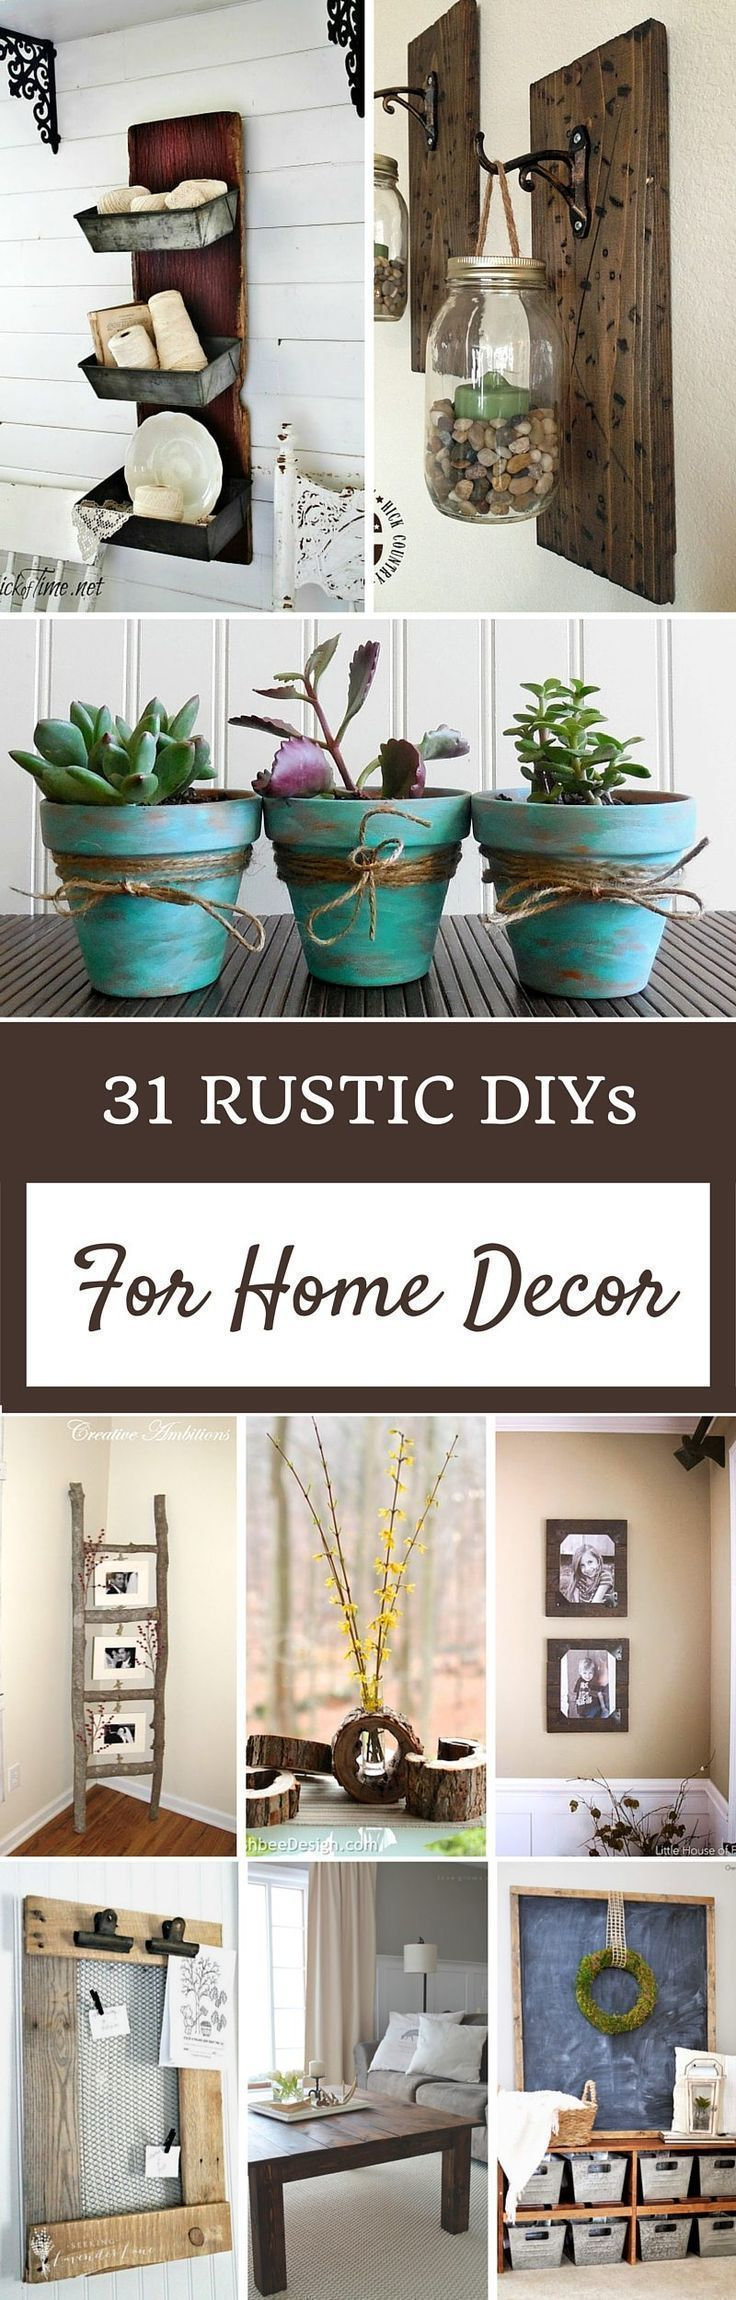 31 rustic diy home decor projects pinterest cosas viejas 31 rustic diy home decor projects create these farmhouse cottage do it yourself projects solutioingenieria Image collections